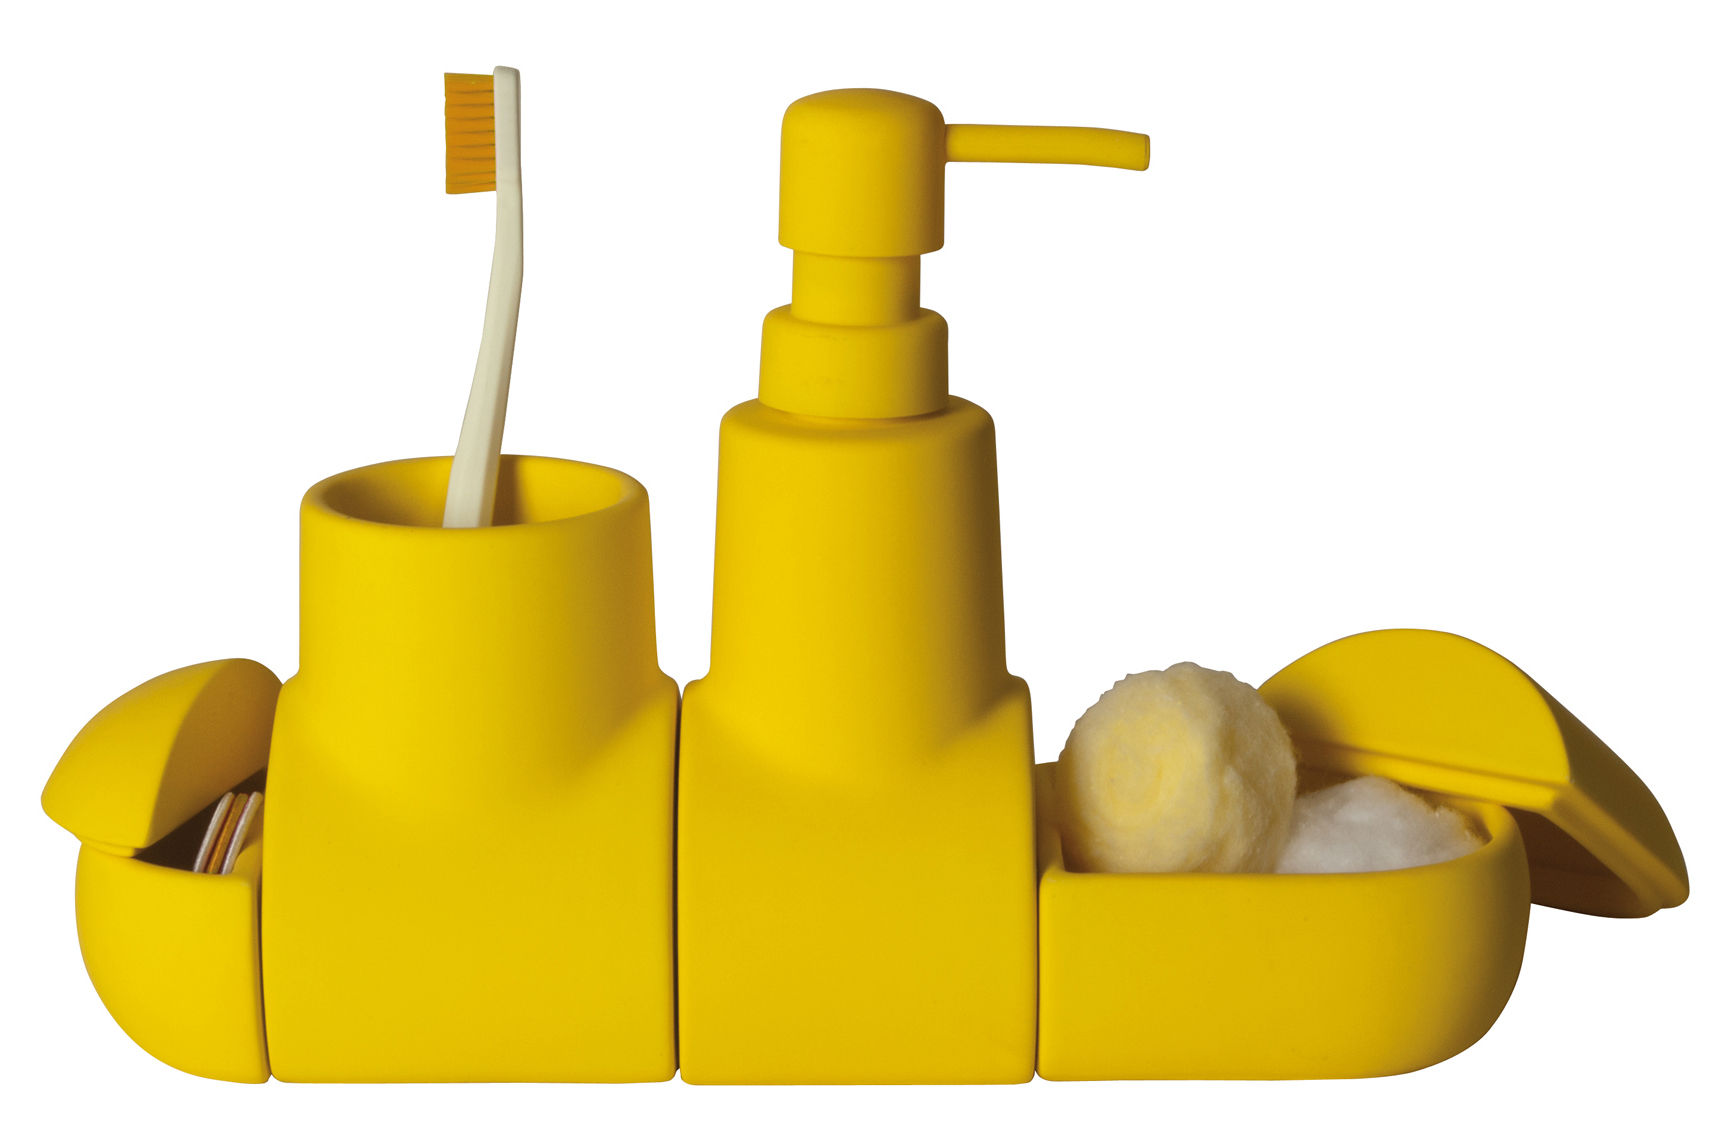 submarine accessories set for bathroom yellow by seletti. Black Bedroom Furniture Sets. Home Design Ideas